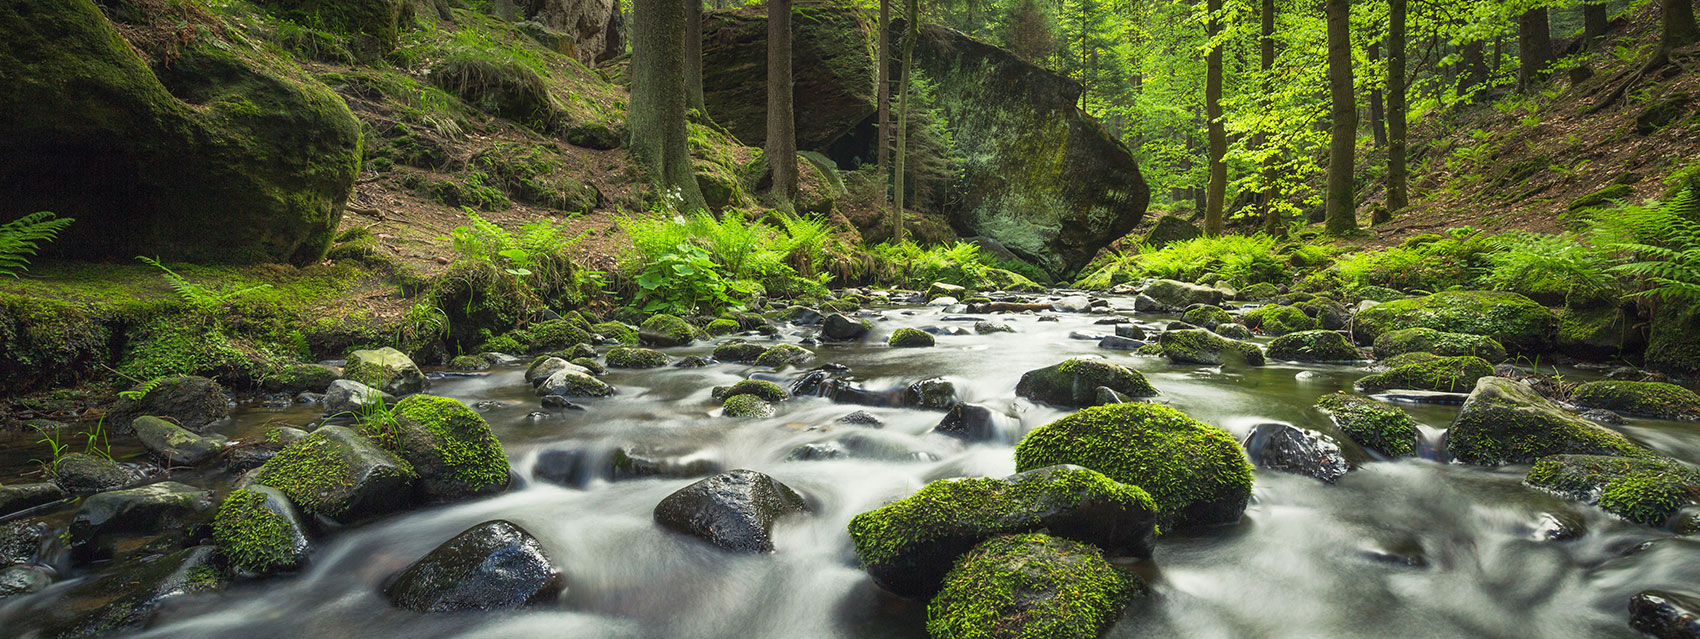 Water flowing quickly over moss covered rocks in a forest